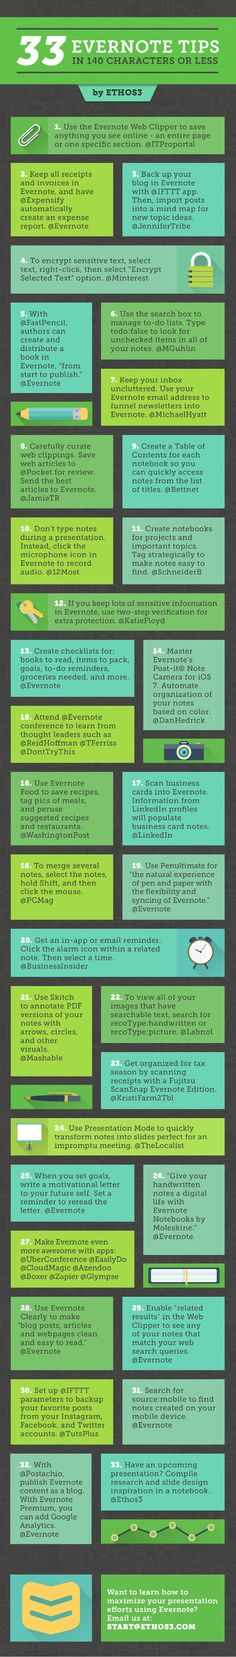 33 Evernote Tips, in 140 characters or less by Ethos3 | Presentation Design and Training via slideshare